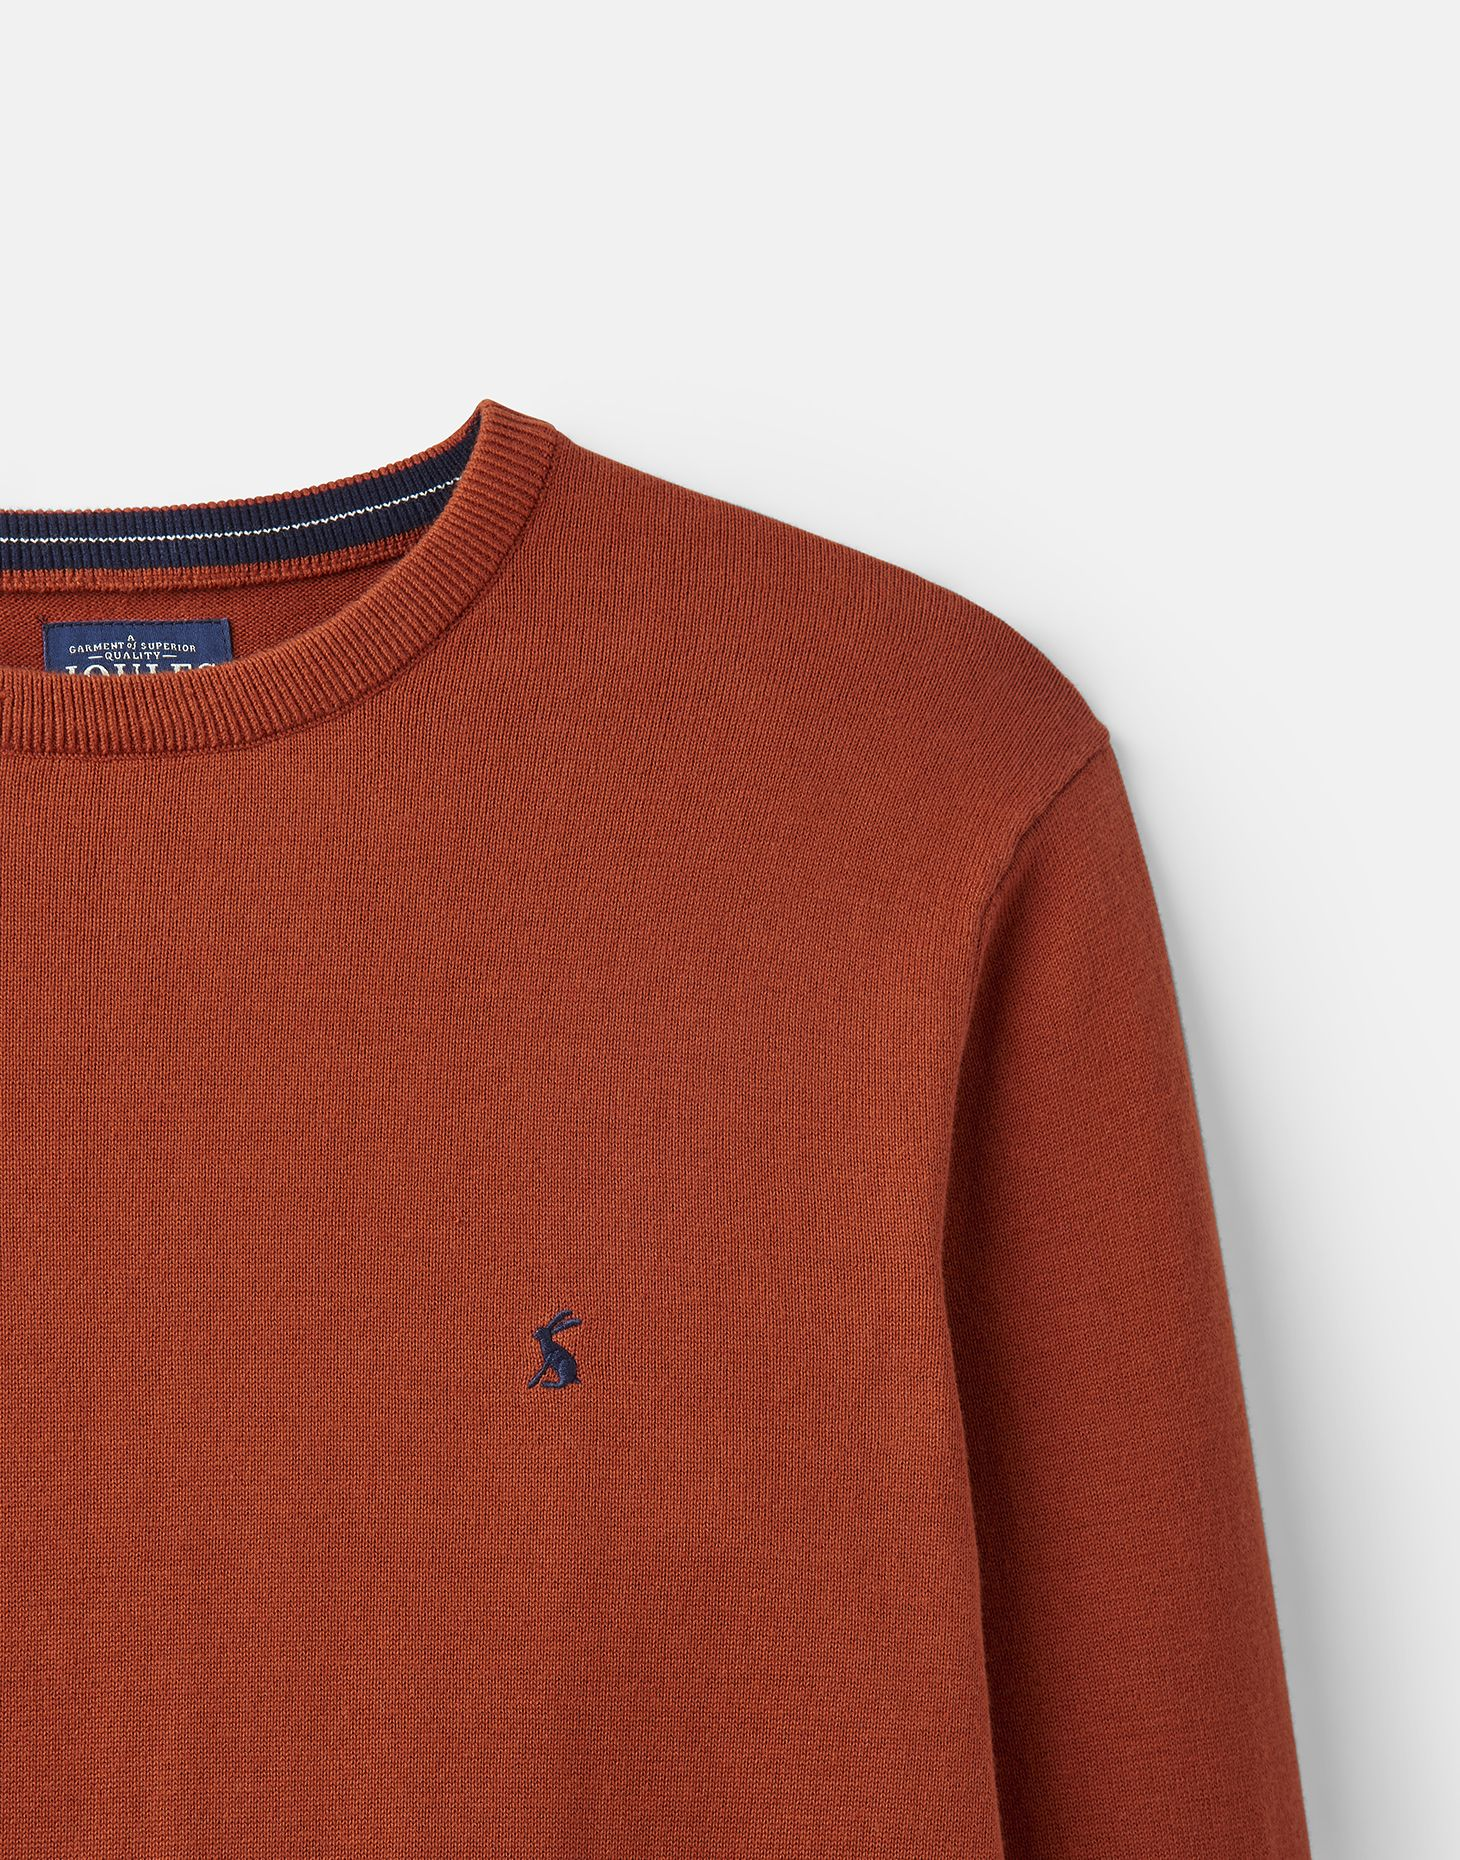 Joules 206972 Crew Neck Jumper in PICANTE